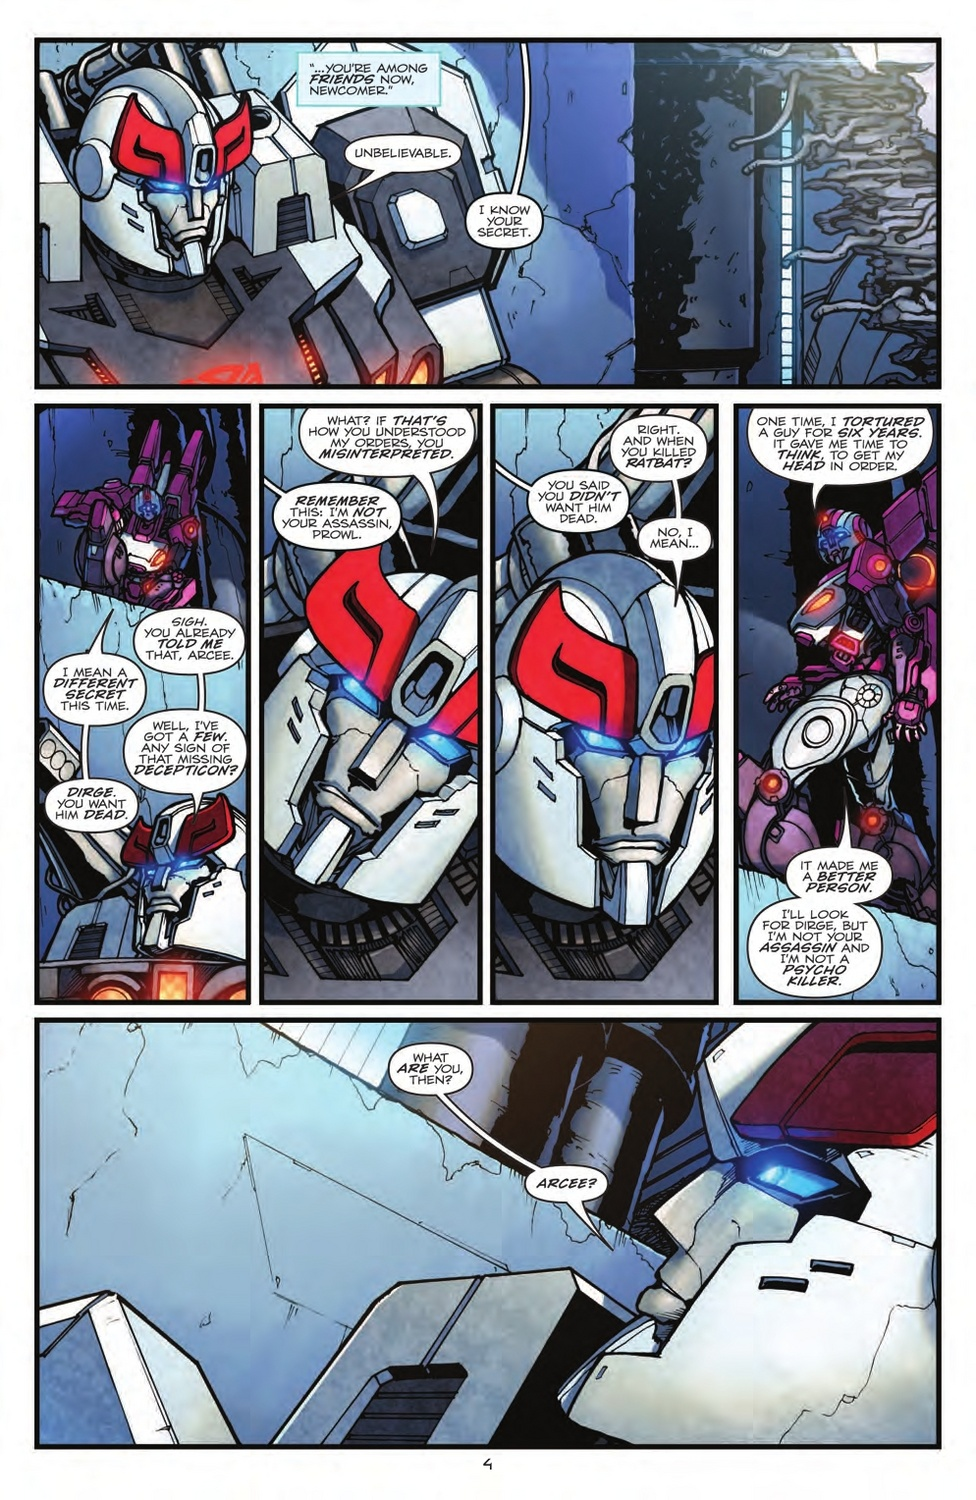 transformers-comics-robots-in-disguise-issue-5-page-4 Transformers Robots in Disguise #5